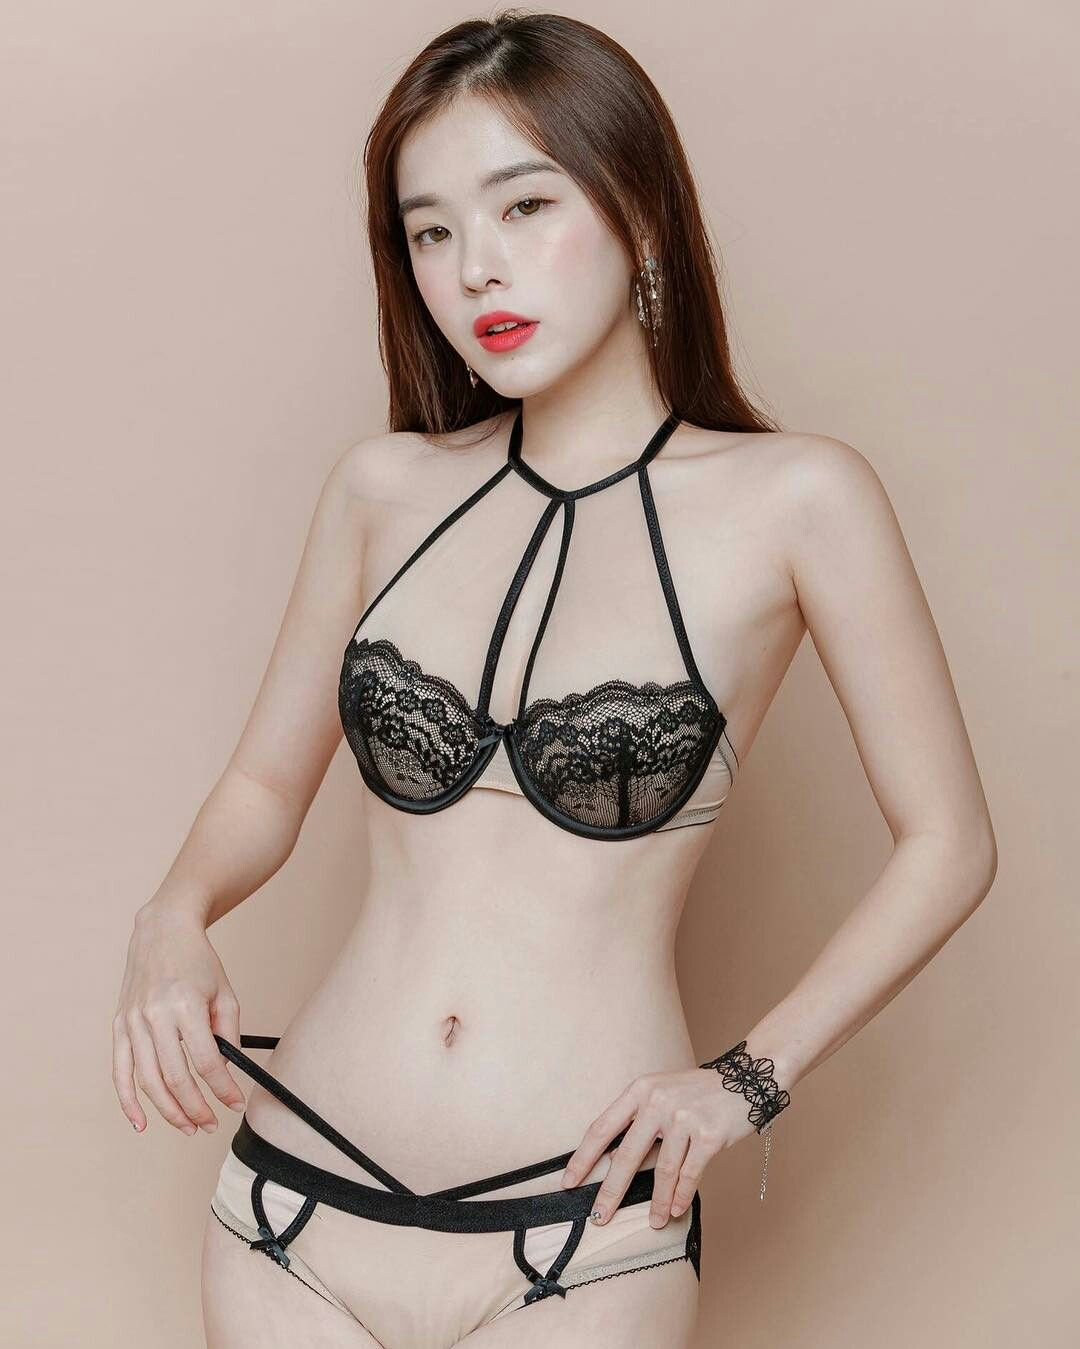 Jun hyoseong south korea female